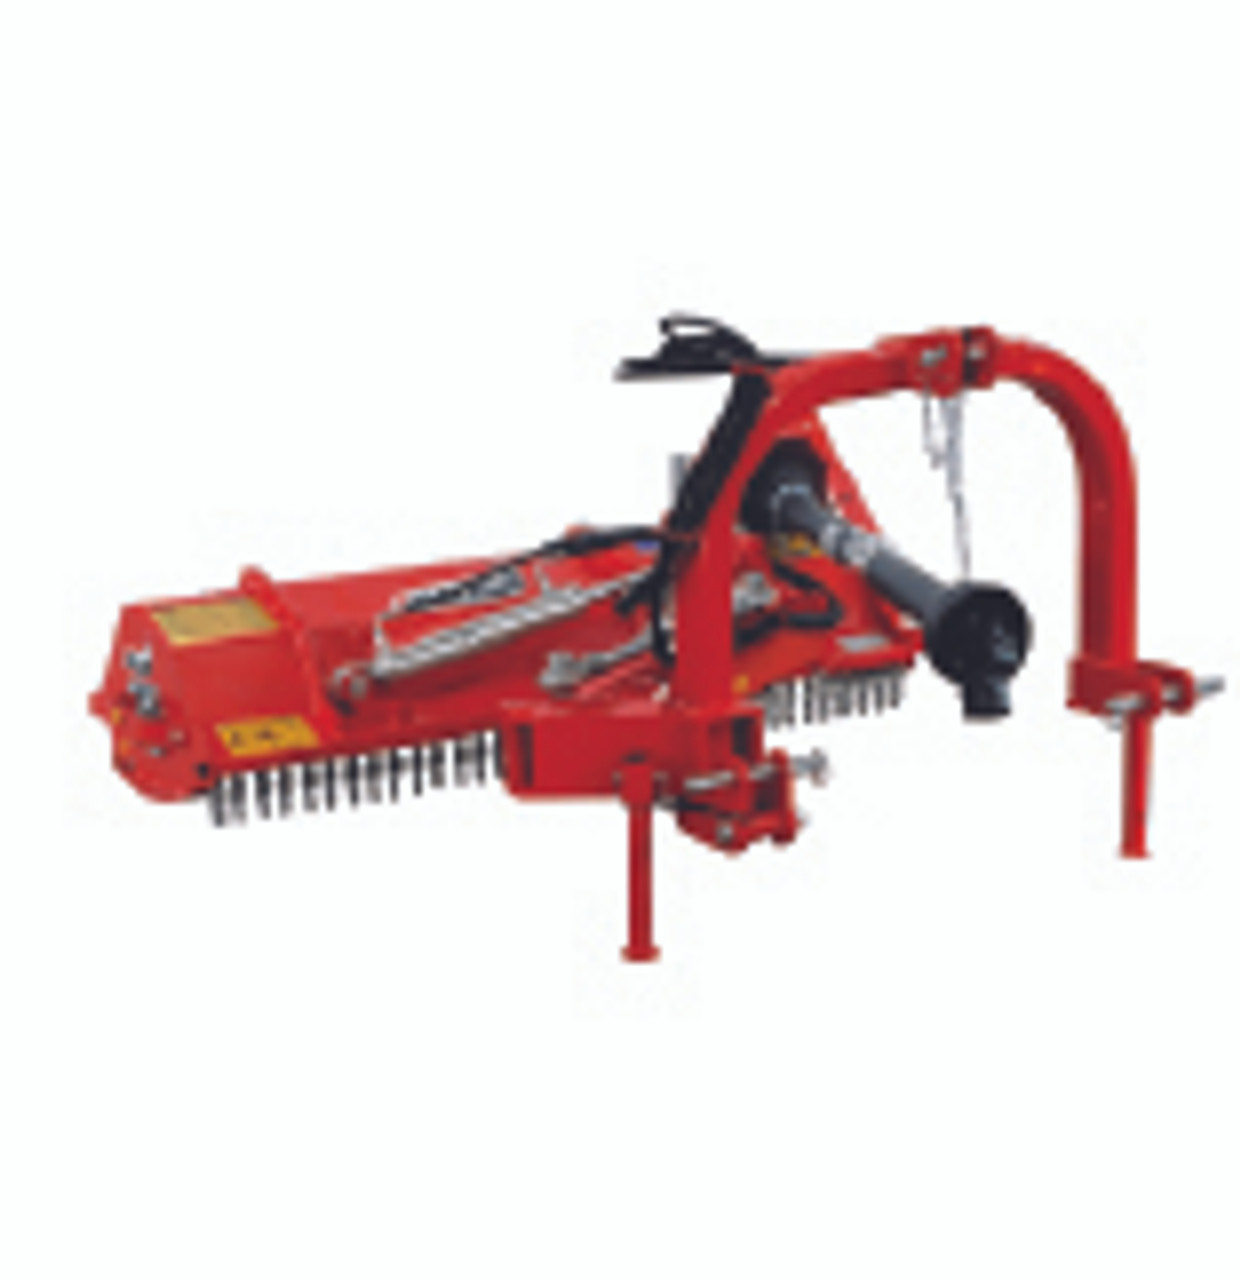 TS52 Hydraulic Offset Flail Mower